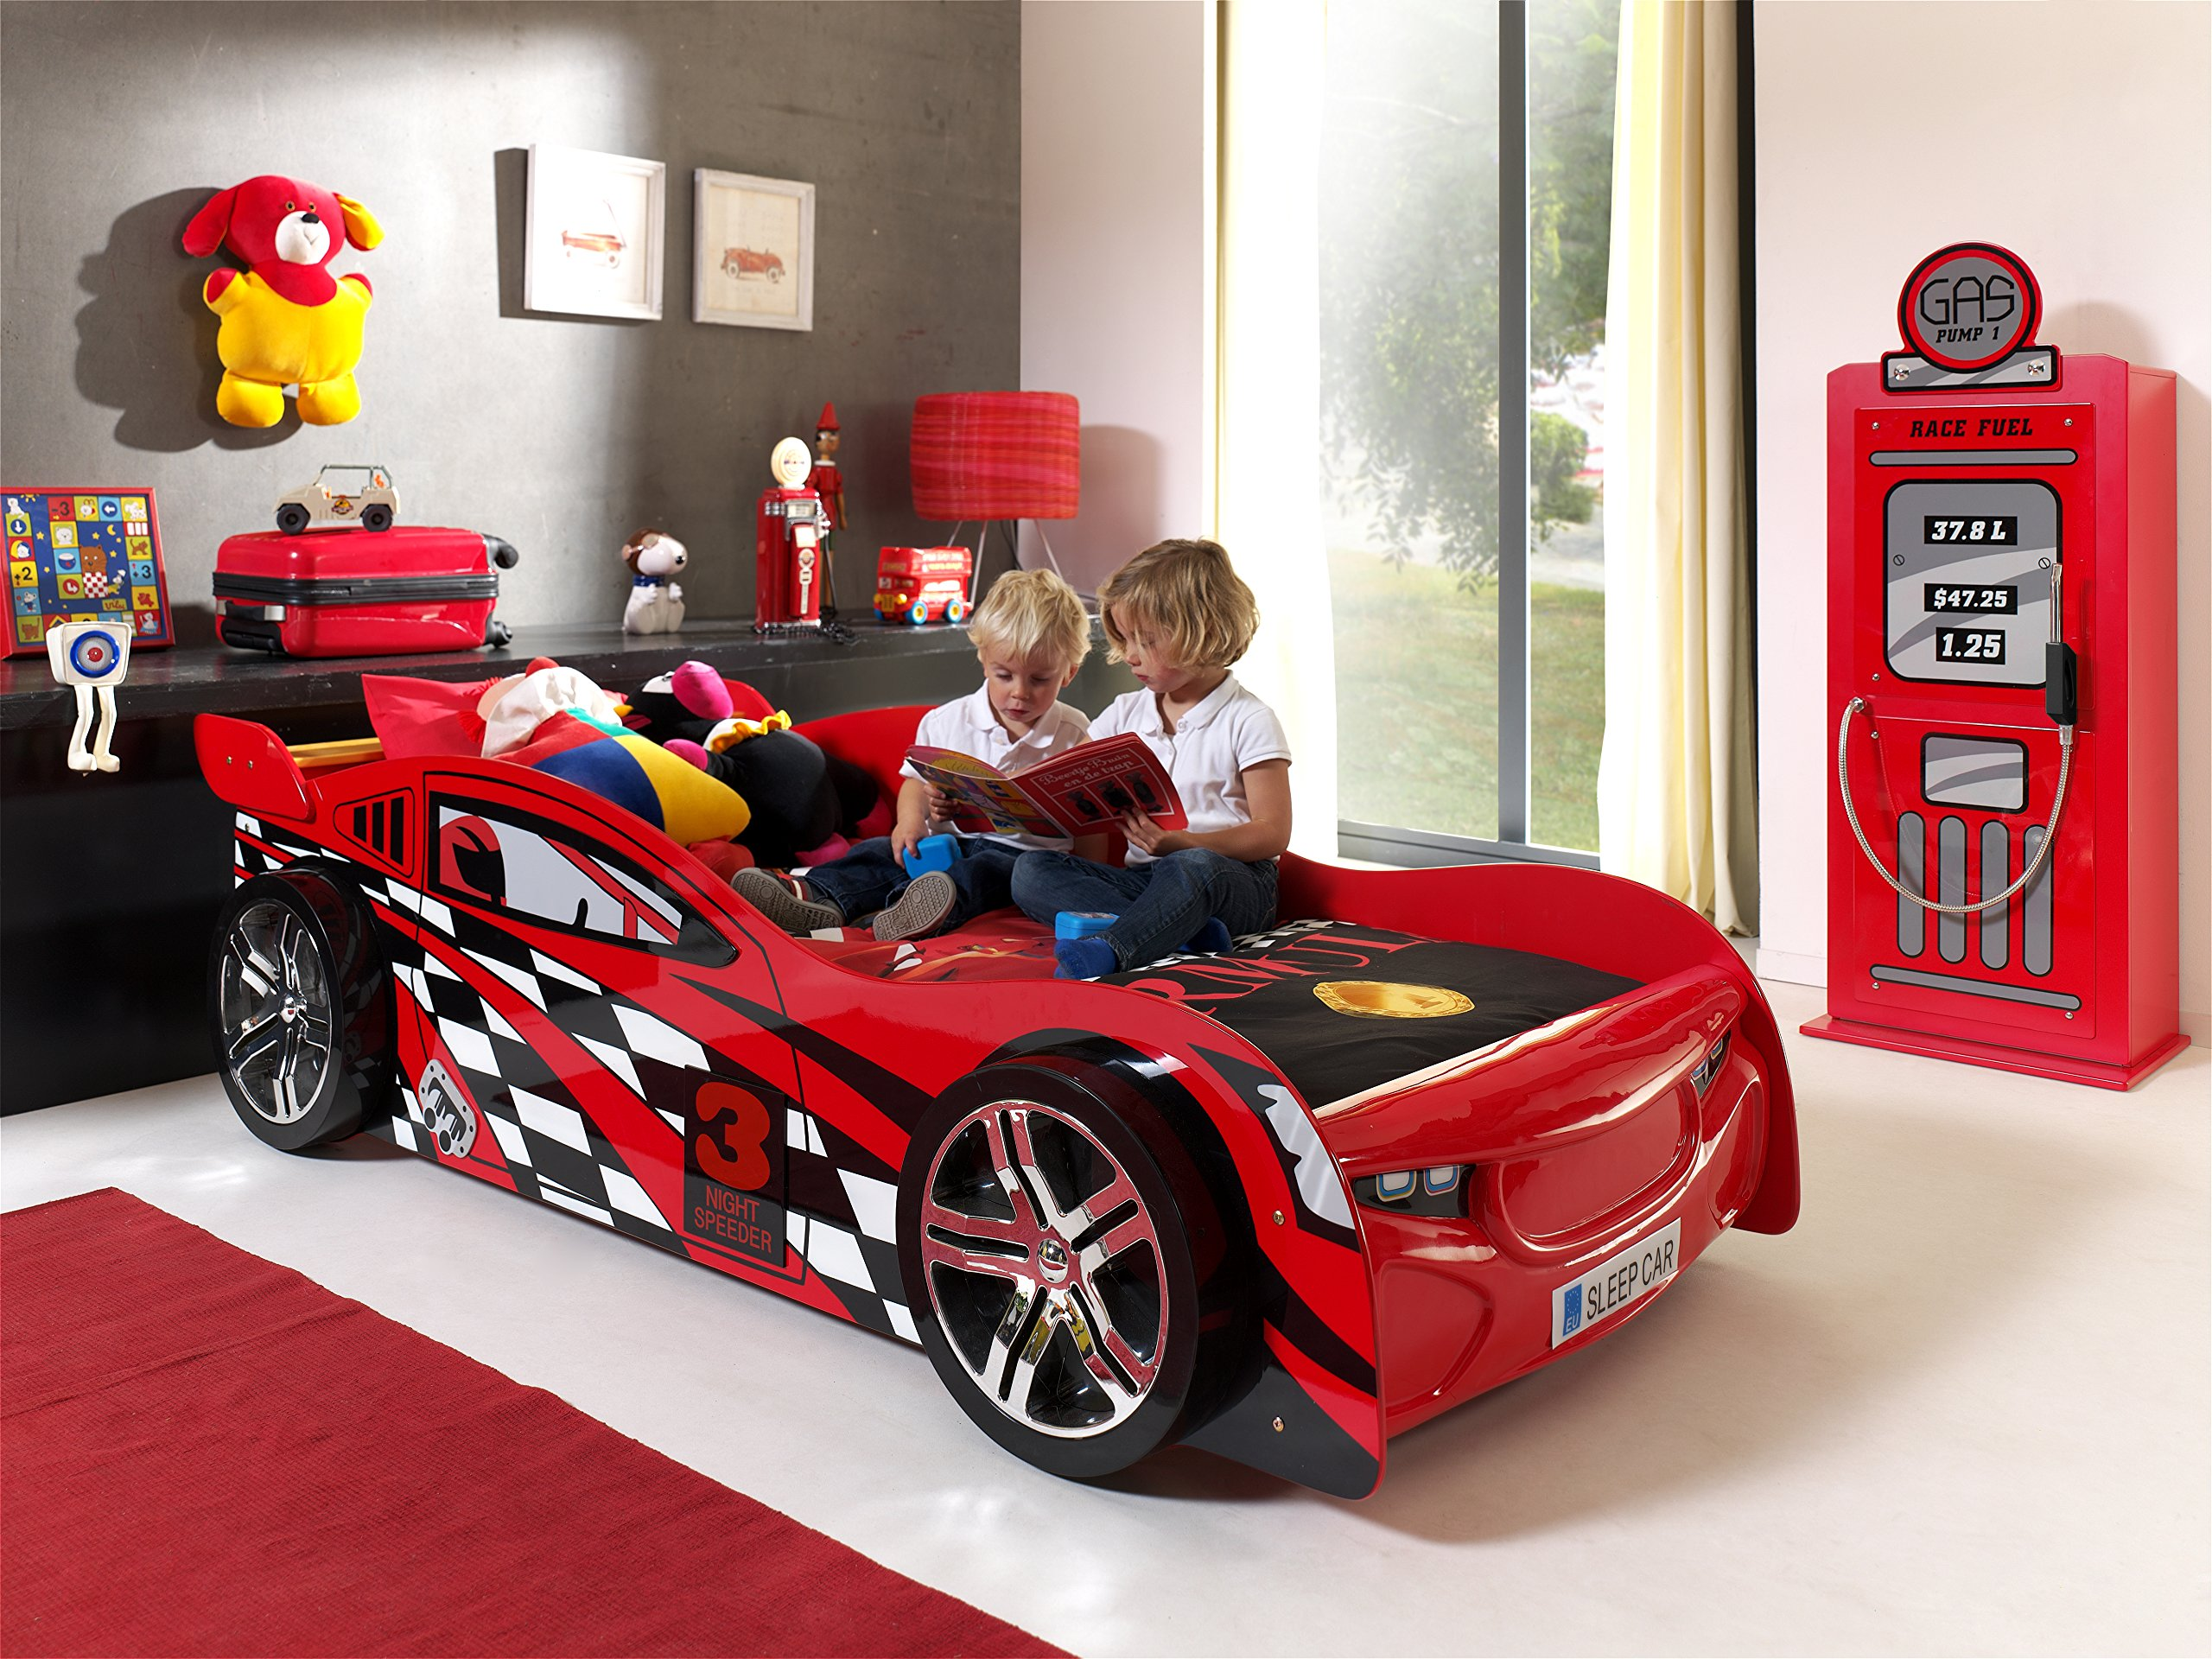 Night Speeder Car Bed with Slatted Frame Vipack Width: approximately 110 cm Height: approximately 60 cm Sleeping surface: approximately 90 x 200 cm 3